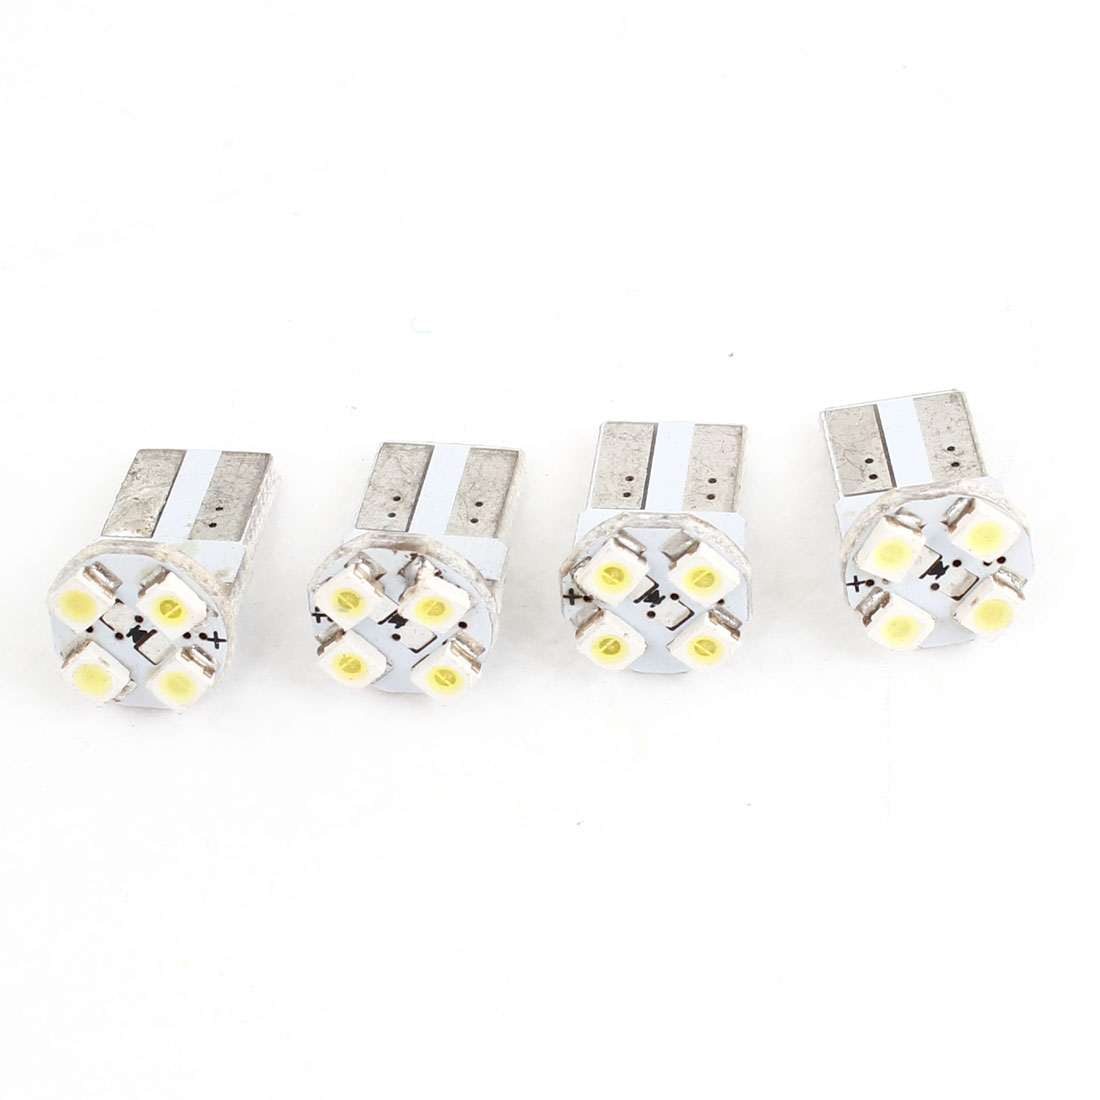 4 x White 4 1206 3528 SMD LED Dashboard Backup Light Lamp Bulb T10 for Auto